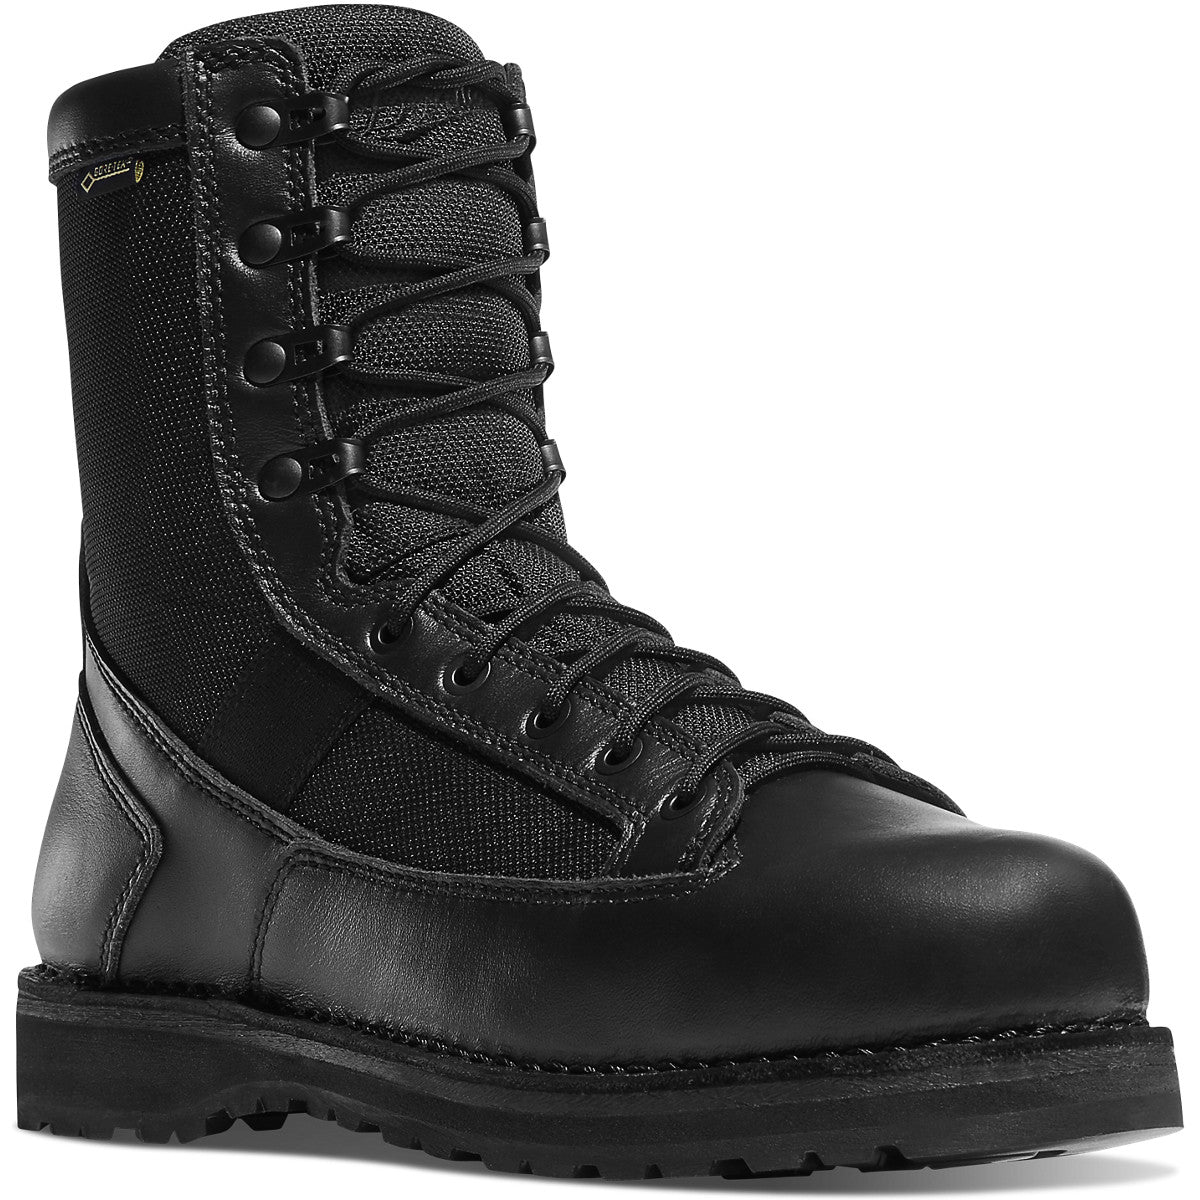 "Danner 8"" Stalwart GTX - red-diamond-uniform-police-supply"